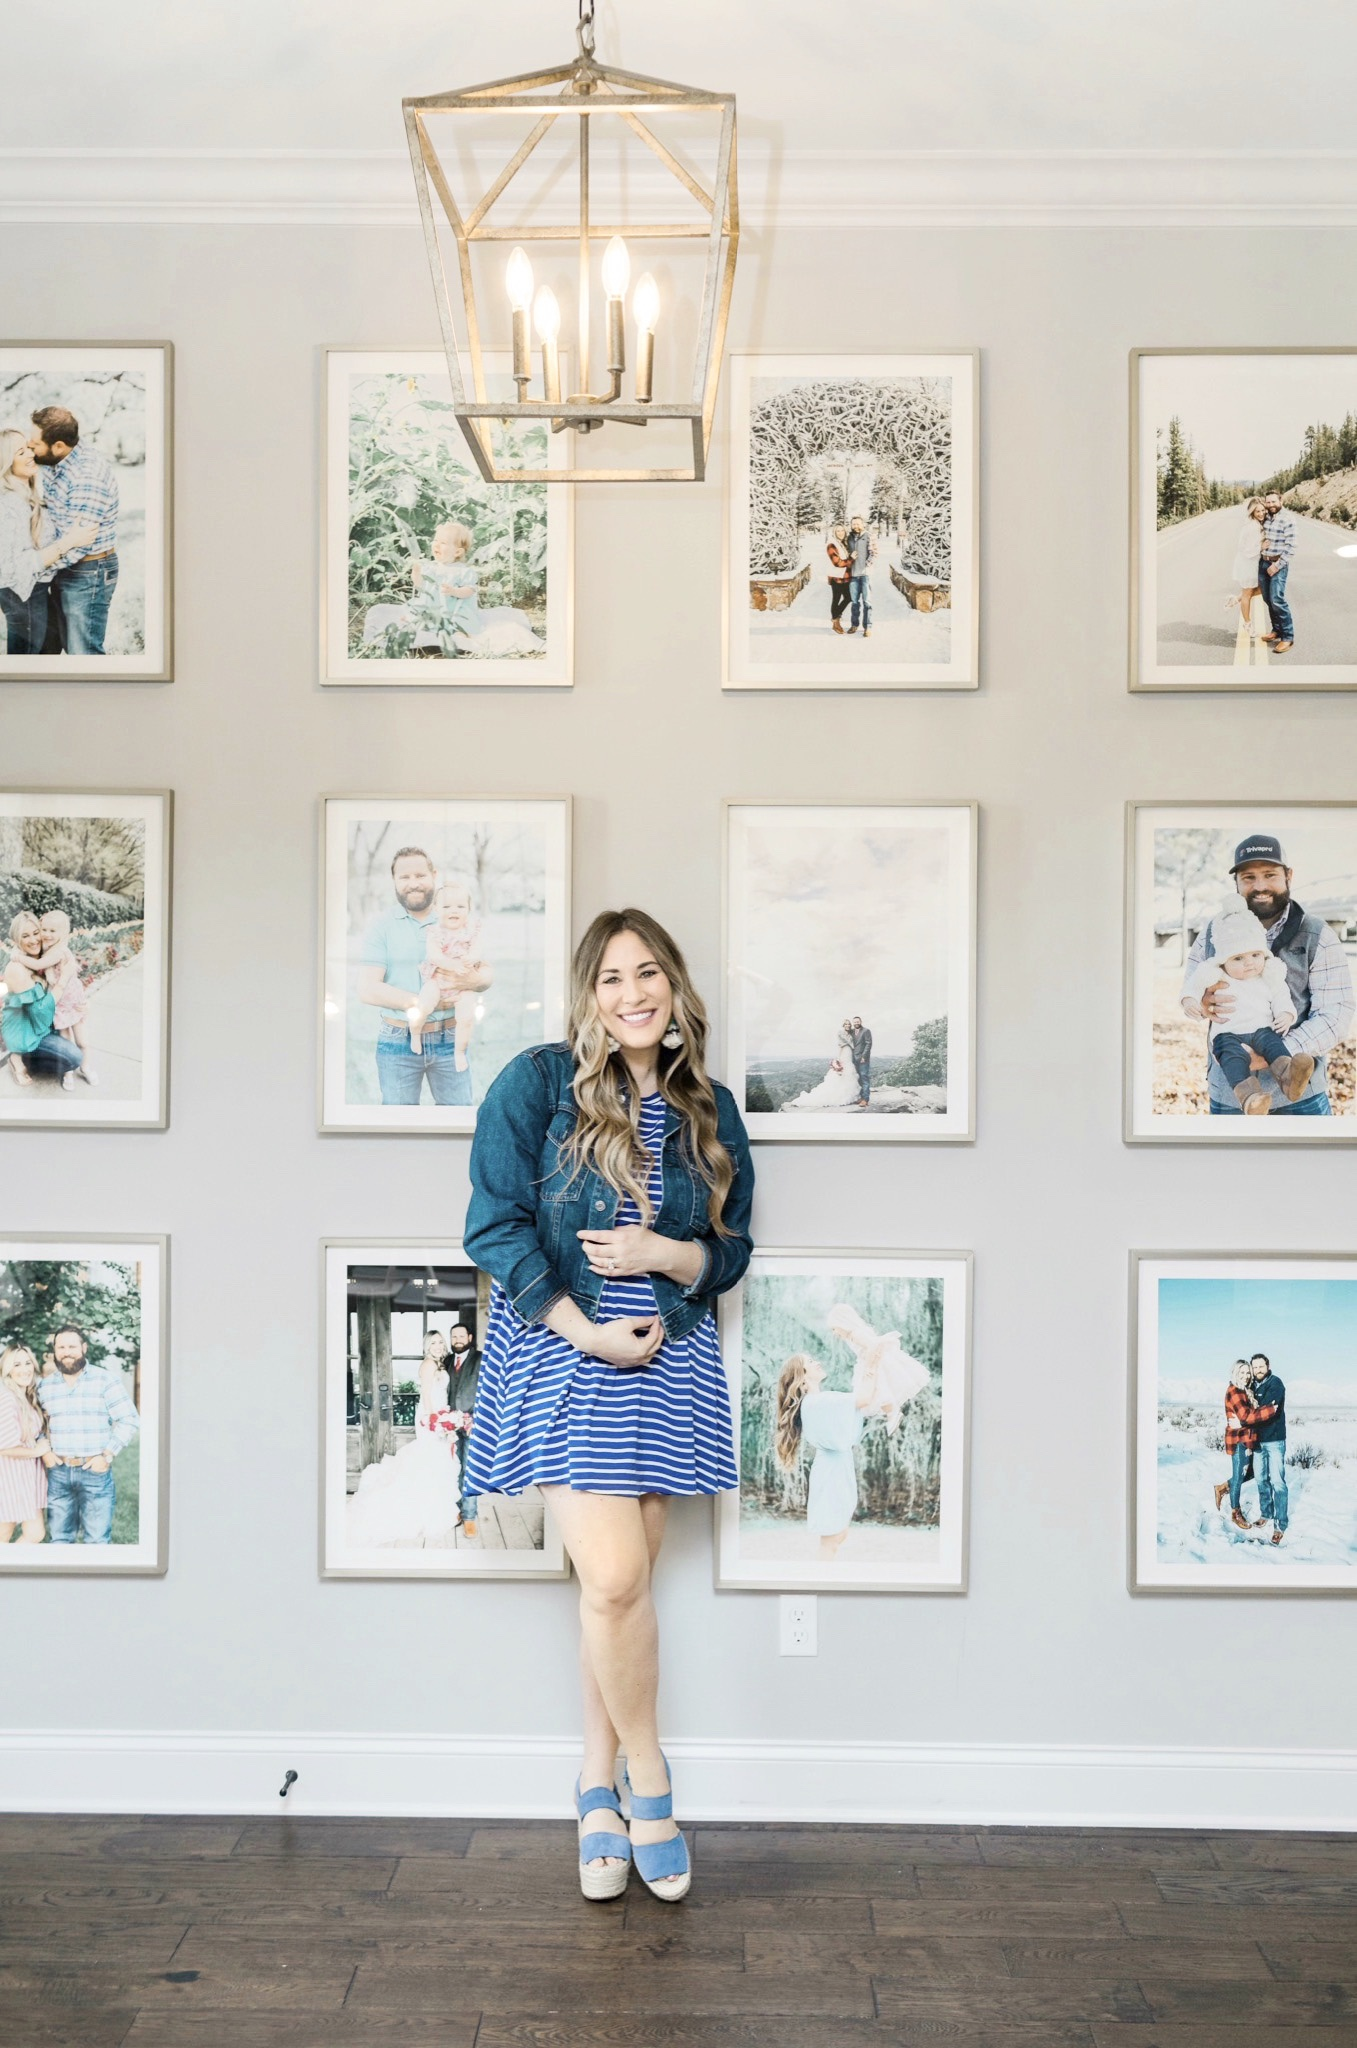 How to Make a Gallery Wall with Minted